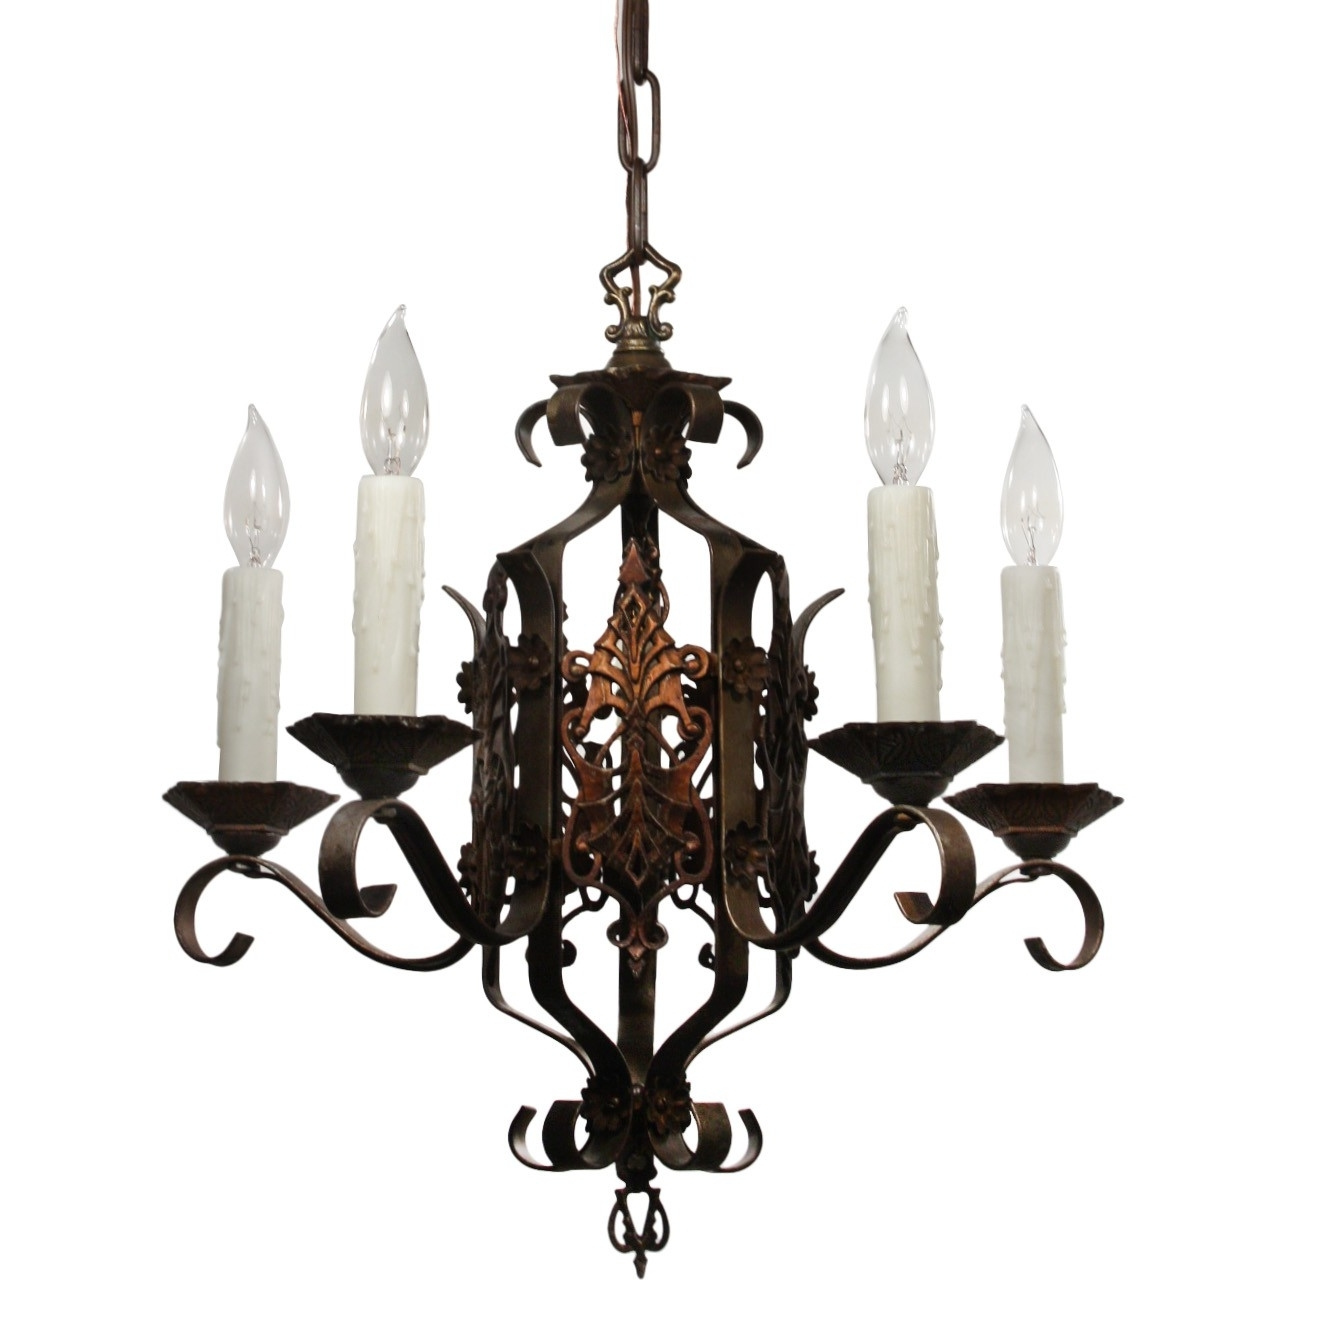 Latest Wrought Iron Chandelier Within Tudor Wrought Iron Chandelier, Antique Lighting – Preservation (View 18 of 20)